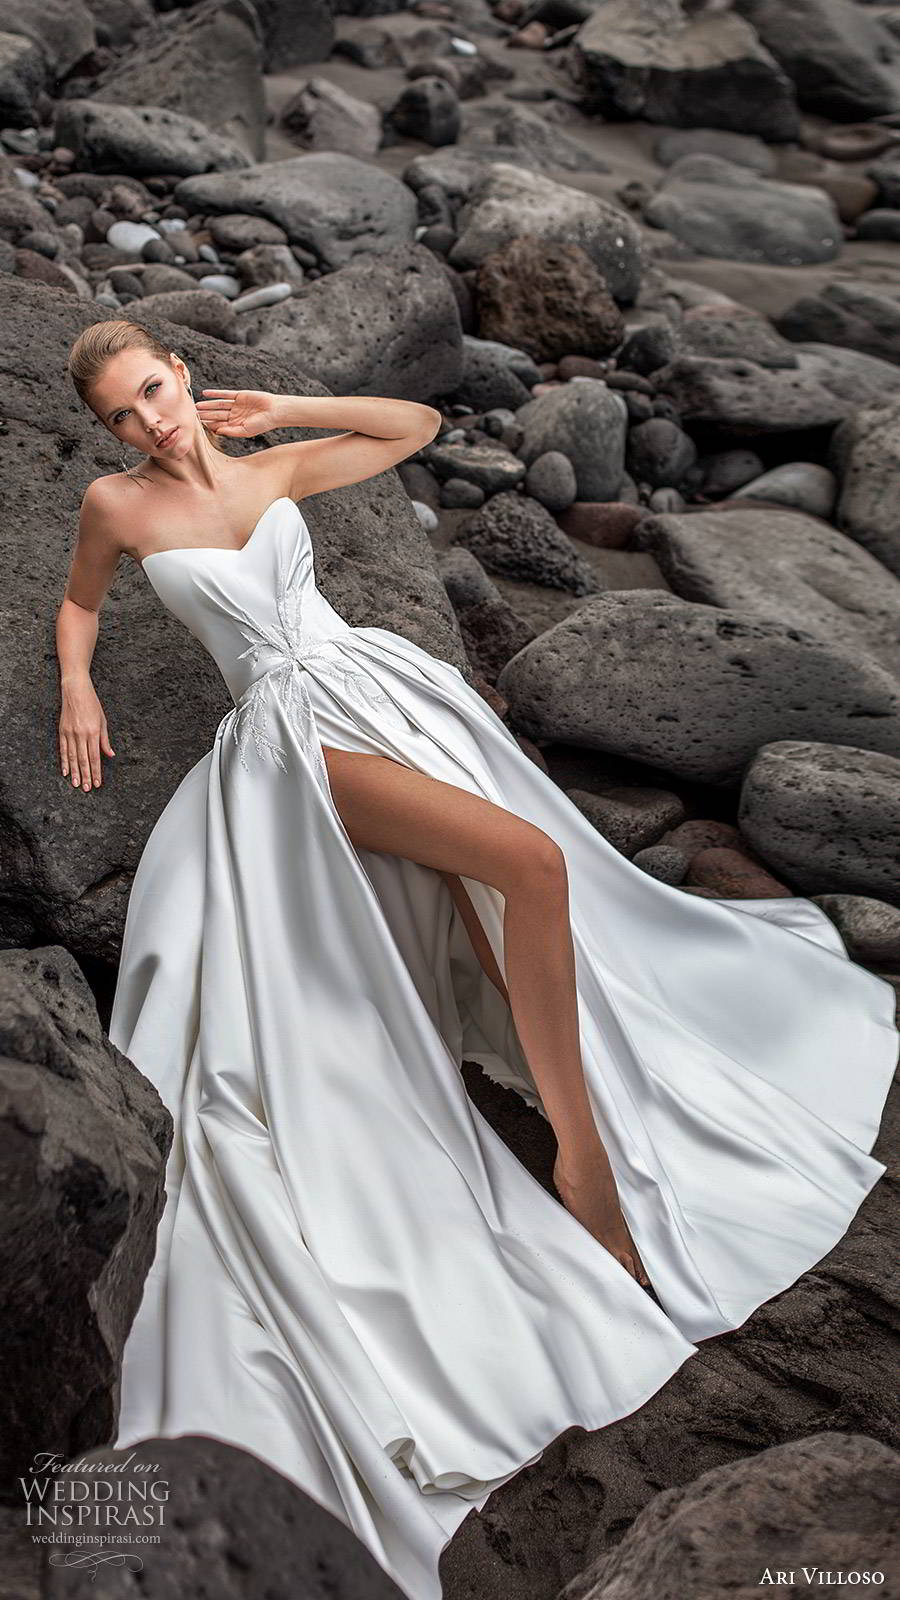 ari villoso 2020 bridal strapless semi sweetheart ruched embellished bodice clean slit skirt a line ball gown wedding dress (19) modern minimalist chapel train mv